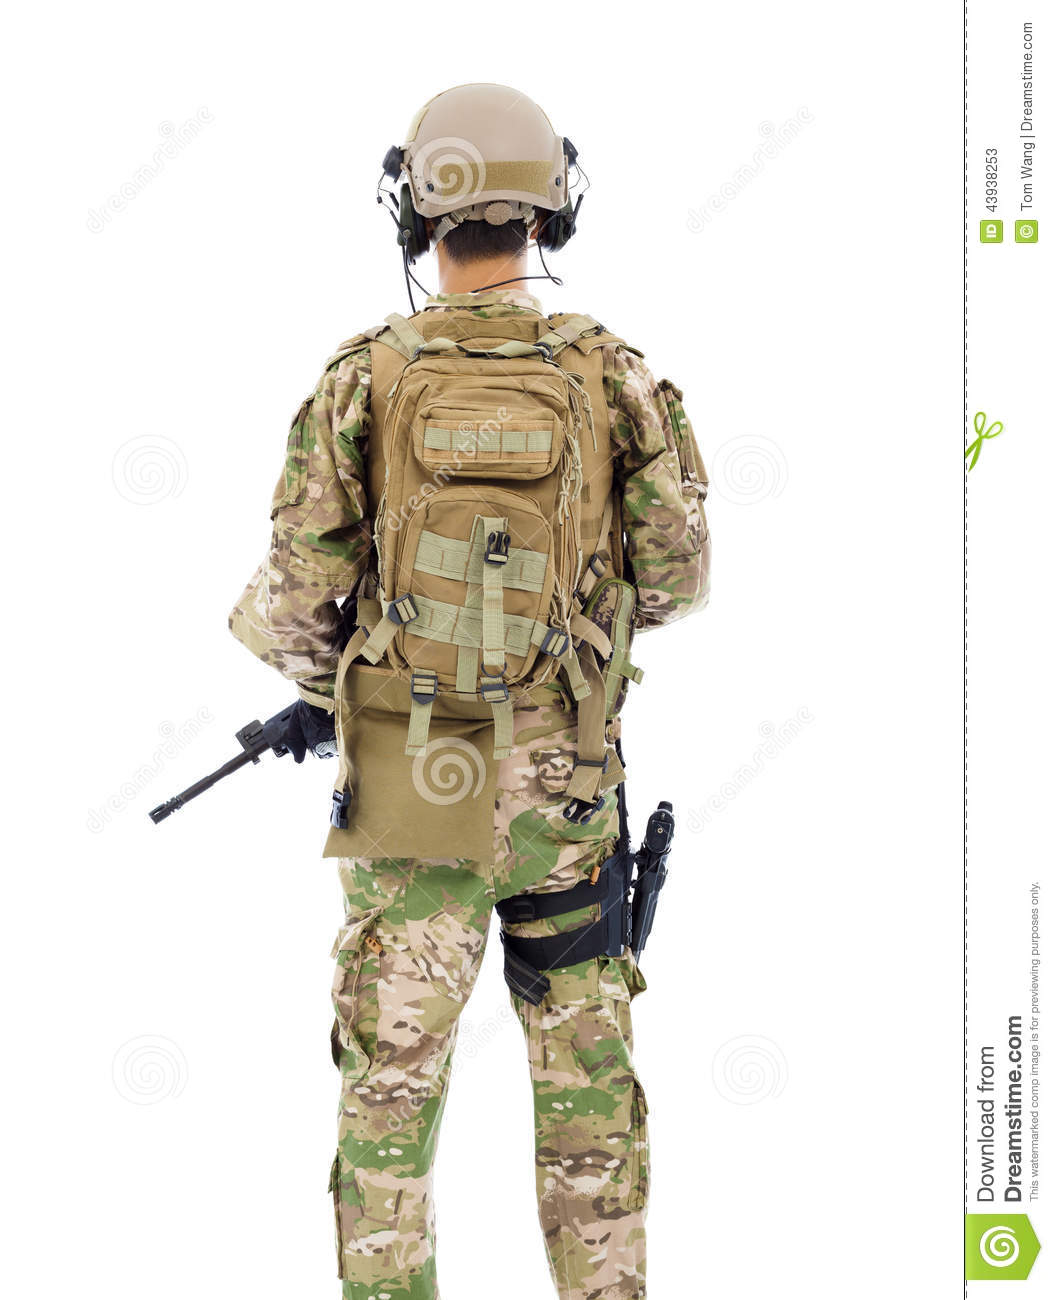 Back View Of Soldier With Rifle Or Sniper Stock Photo - Image ...